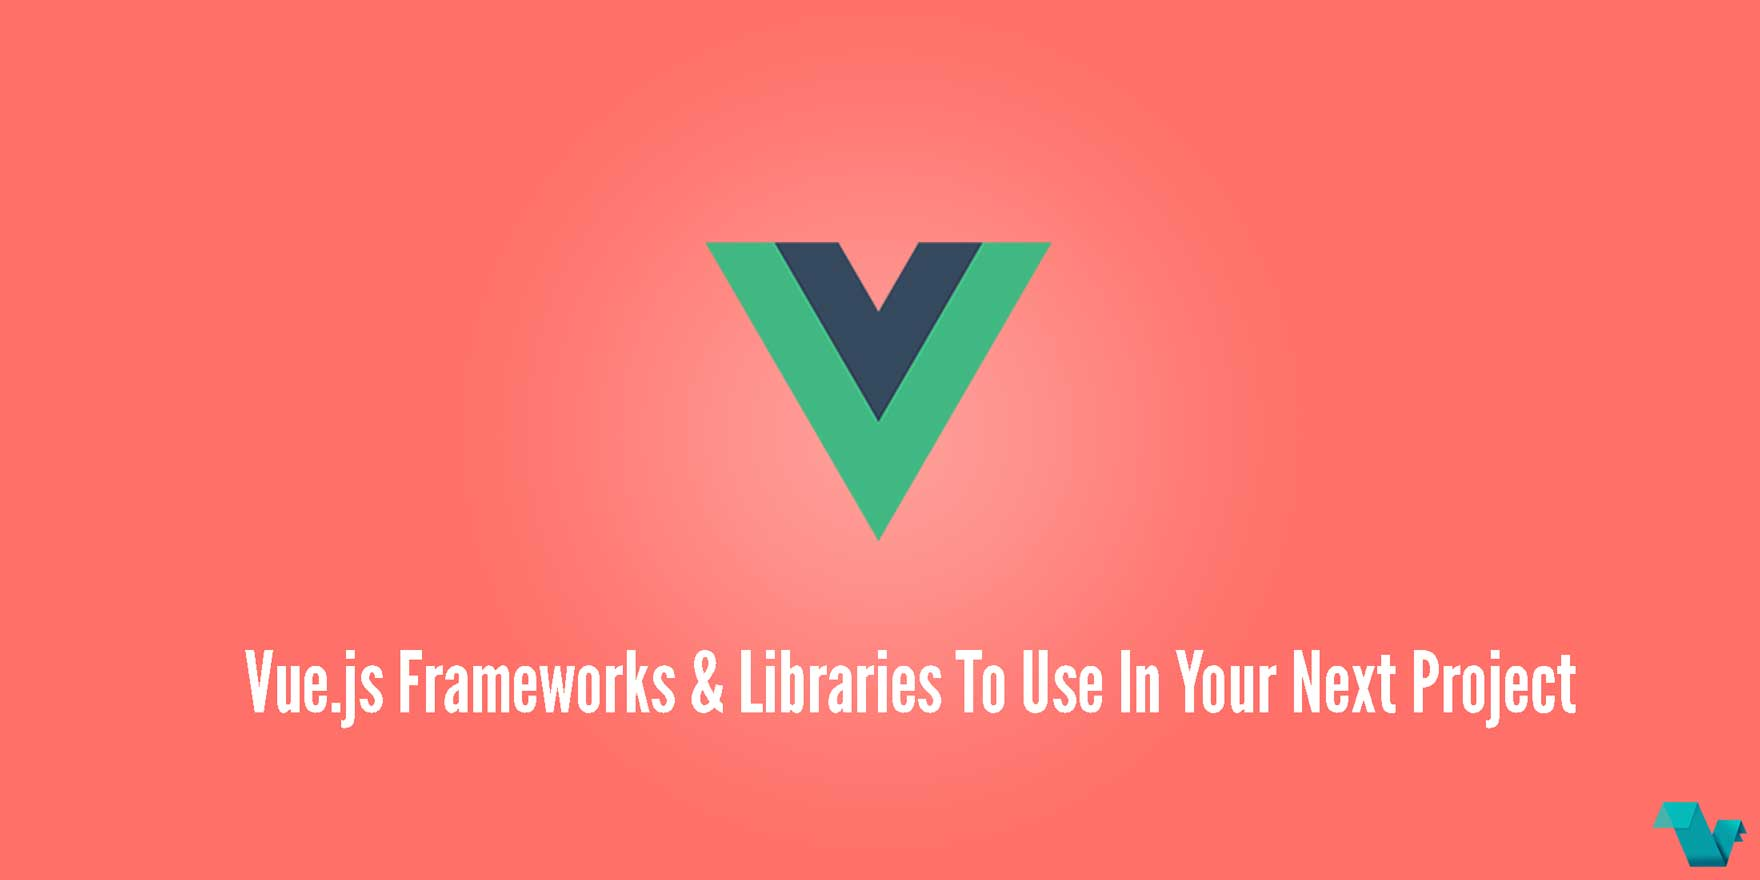 Vue js Frameworks & Libraries to use in your next project